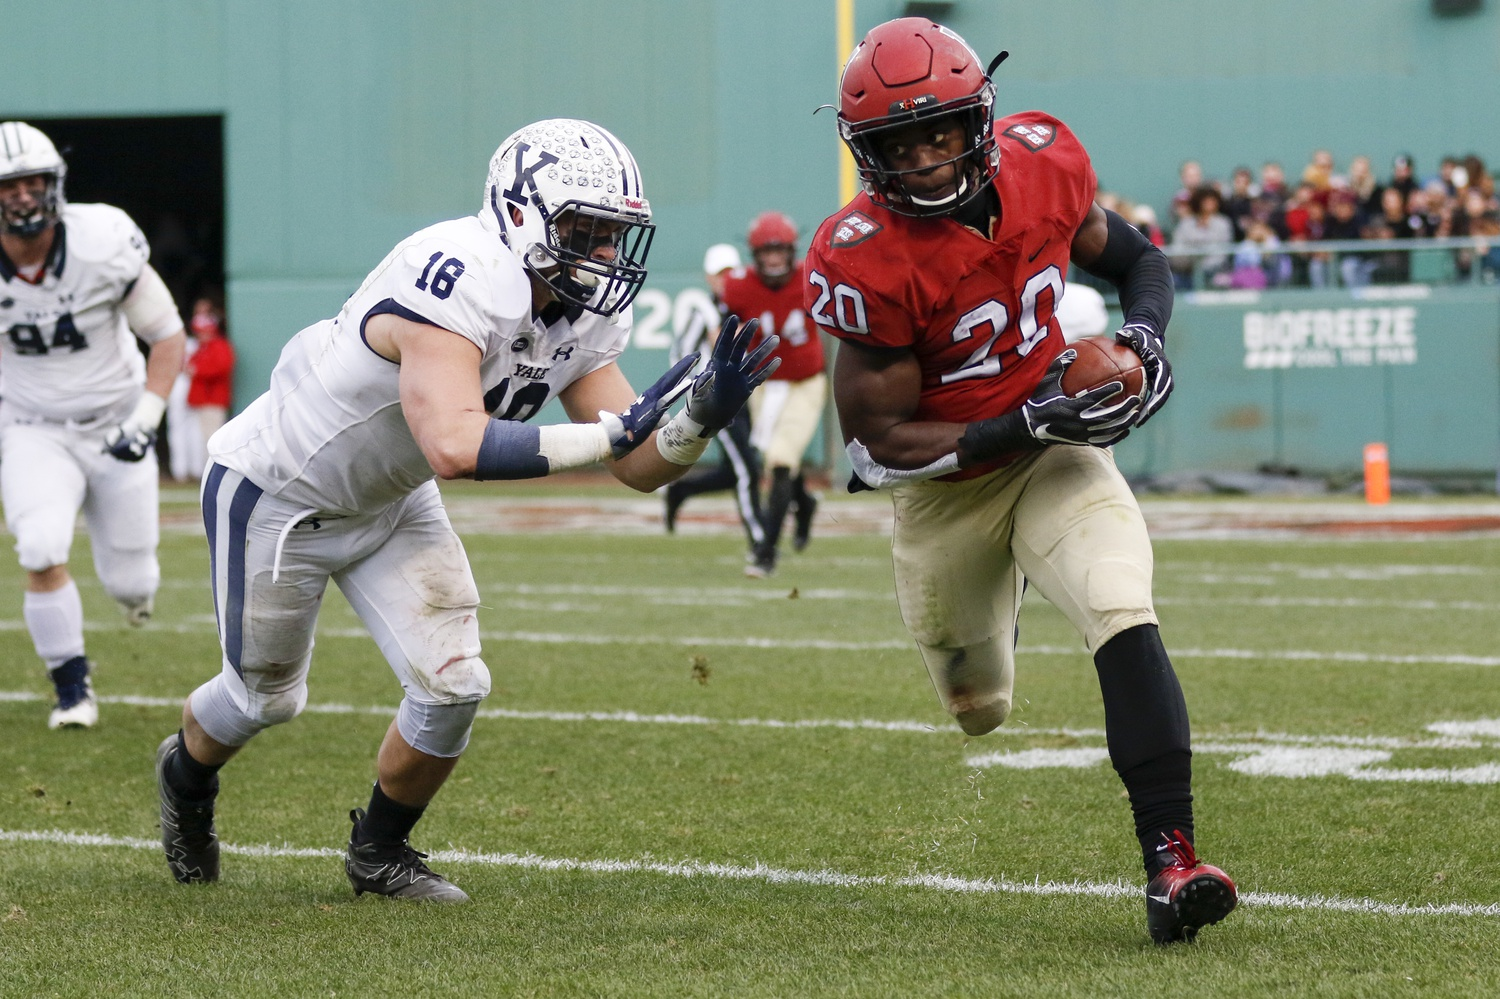 Junior running back Aaron Shampklin, Saturday's leading rusher with 183 yards and two touchdowns, rushes in 2018's Harvard-Yale game at Fenway Park.